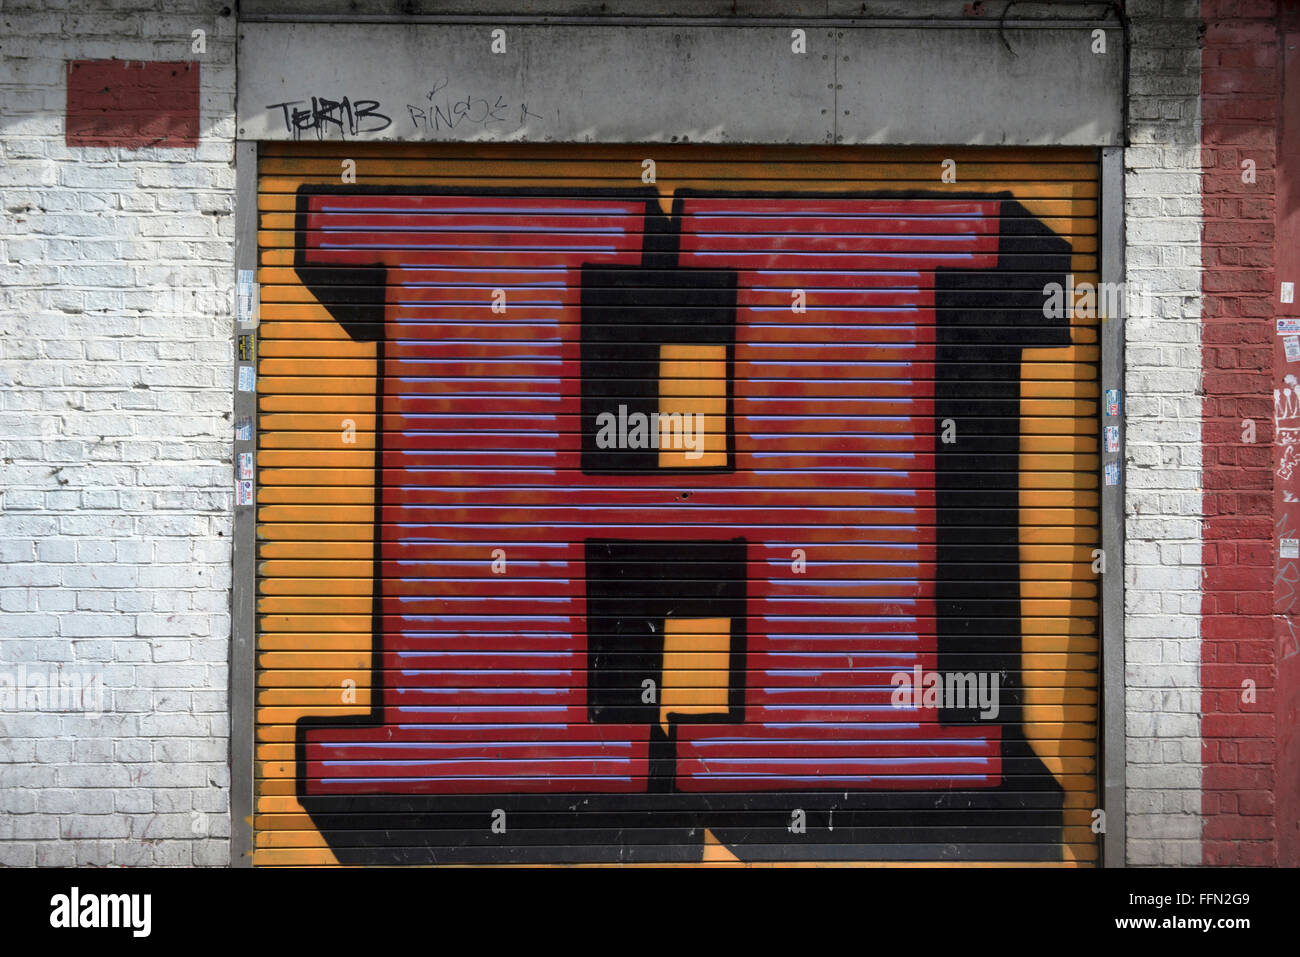 Ben Eine. Street art, a large initial E painted on metal scrolling shutters. - Stock Image